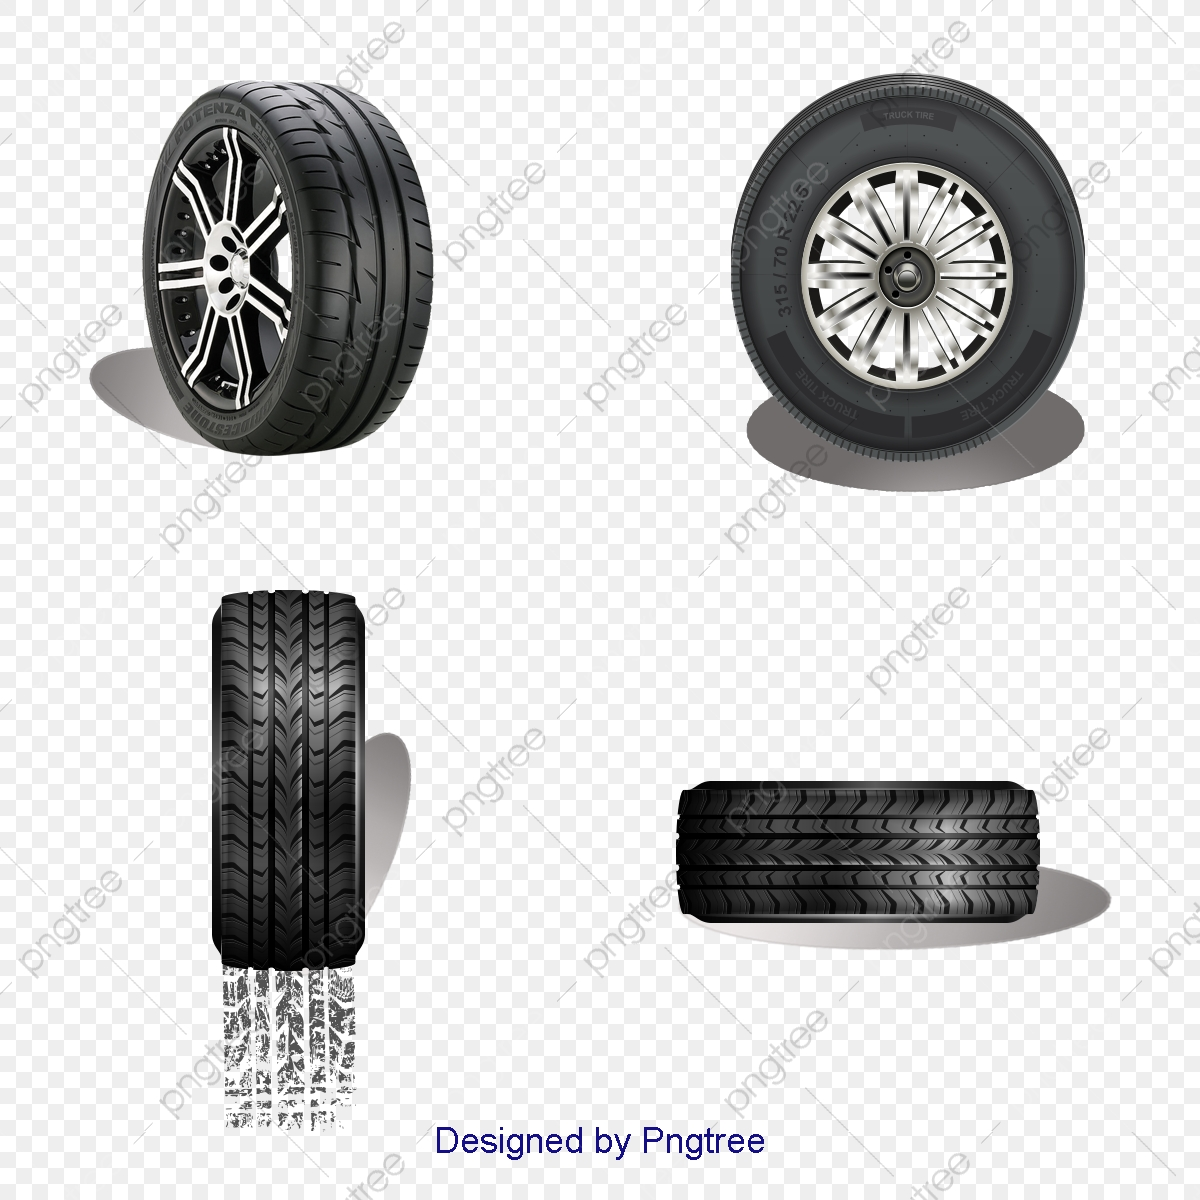 Car Wheel Tires, Beautifully Tire, Car Tires, Rims PNG Transparent.